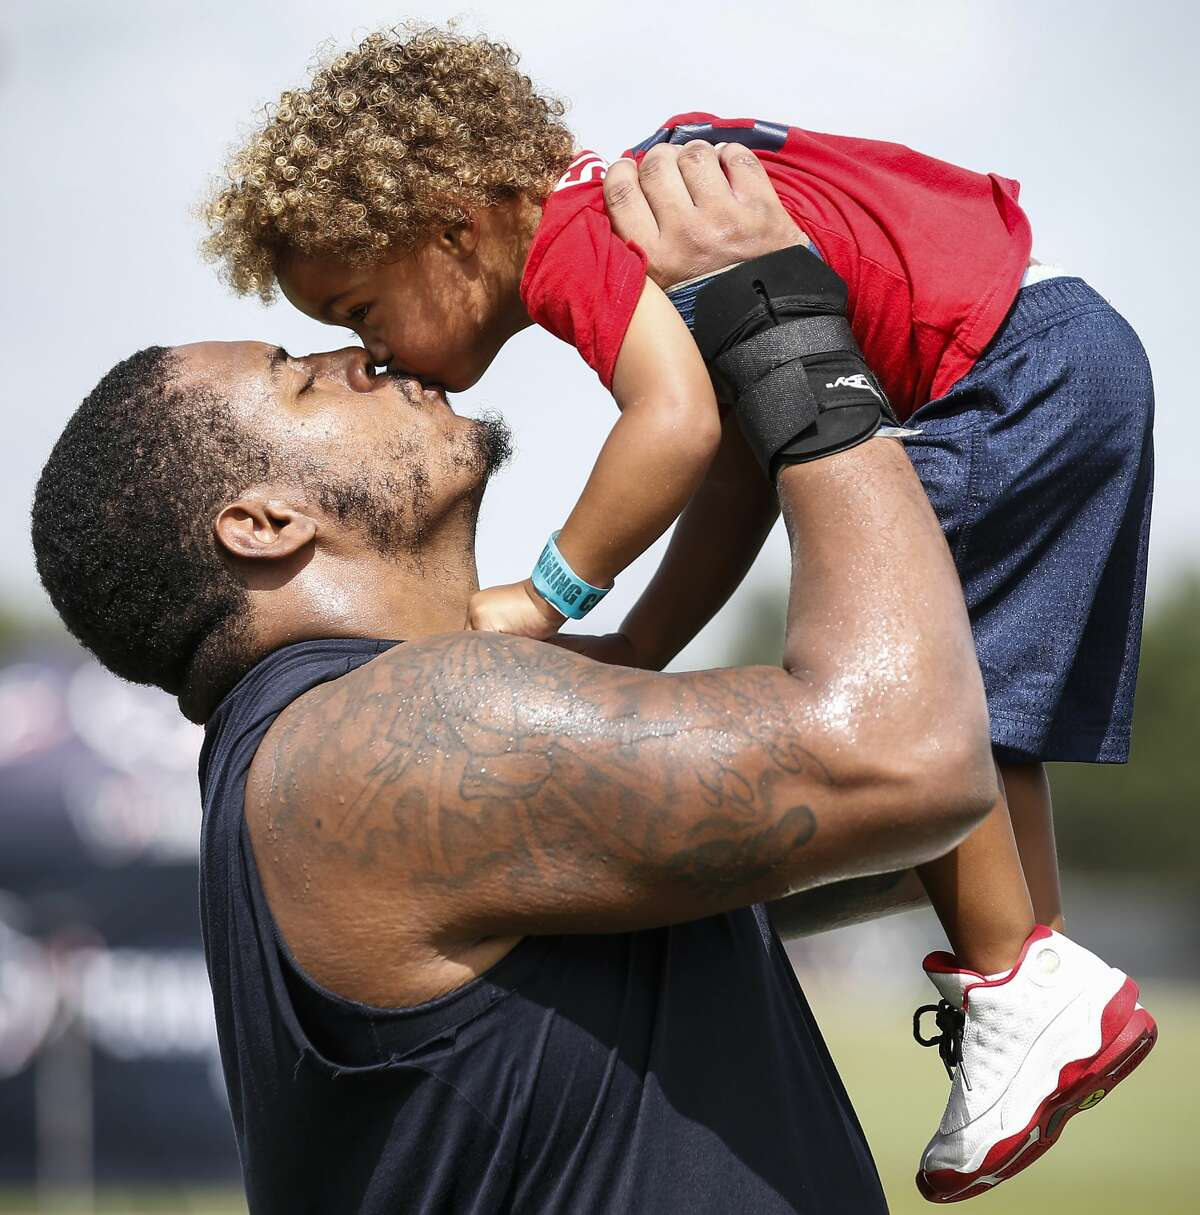 Houston Texans offensive guard Chad Slade lifts his son, Braxton, and gives him a kiss following practice during training camp at the Methodist Training Center on Saturday, Aug. 11, 2018, in Houston.